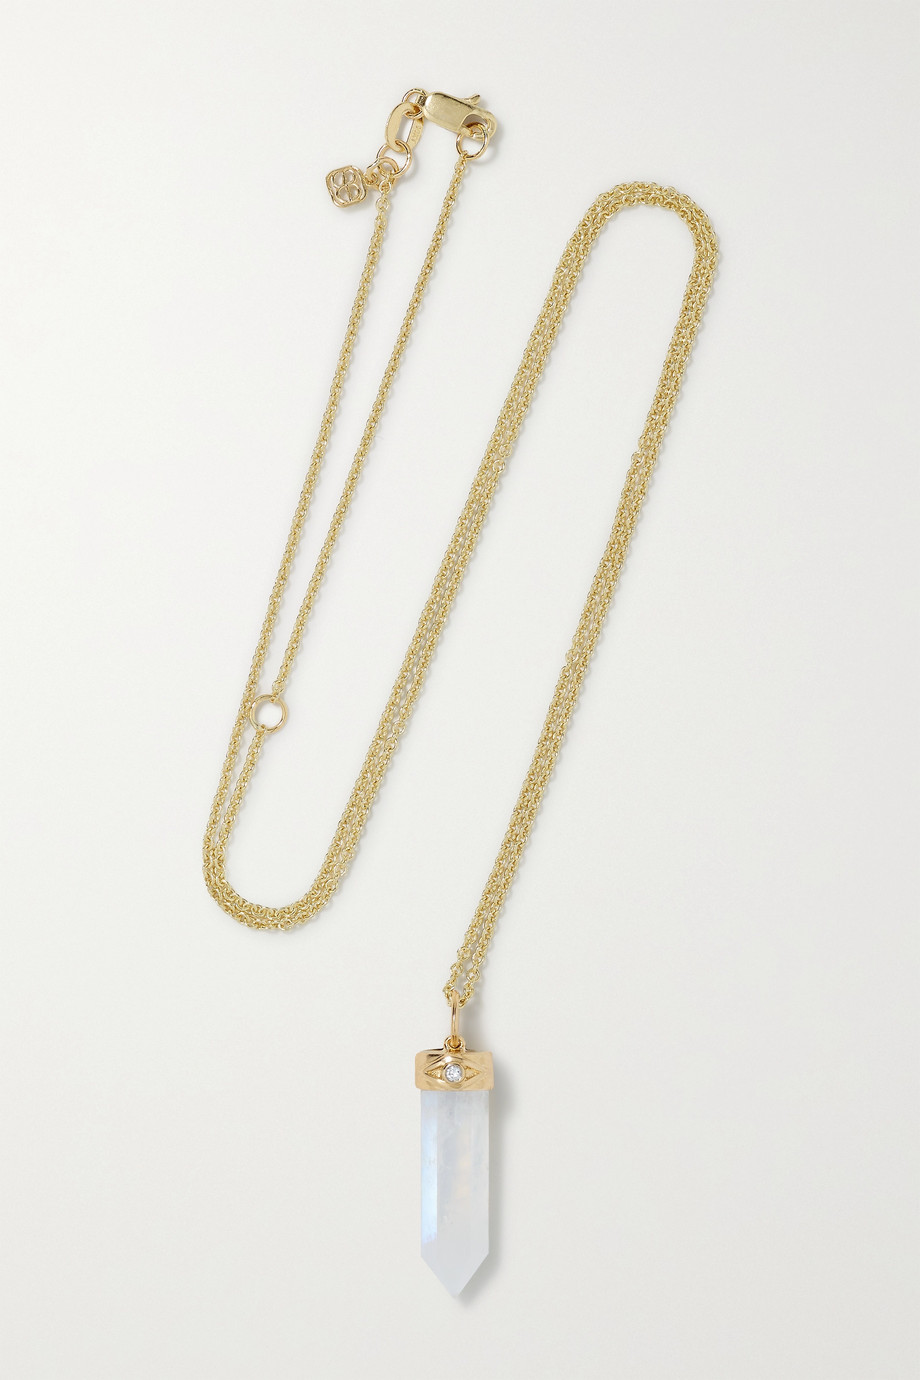 Sydney Evan 14-karat gold, moonstone and diamond necklace